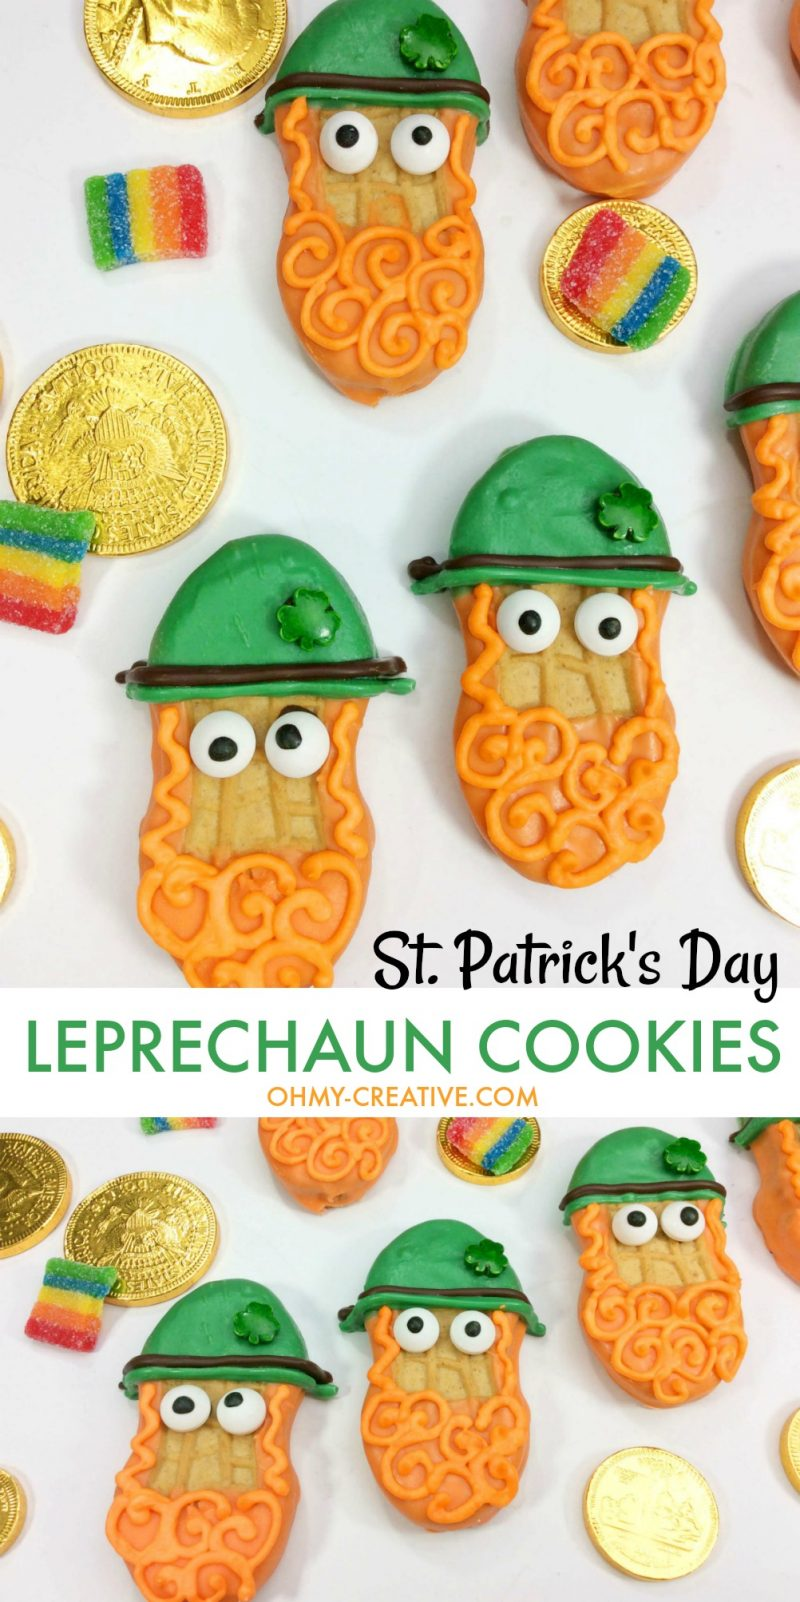 Leprechaun Treats | OHMY-CREATIVE.COM | Leprechaun Cookies | St. Patrick's Day Cookies | St. Patrick's Day Treats | Leprechaun Ideas | Leprechaun For Kids